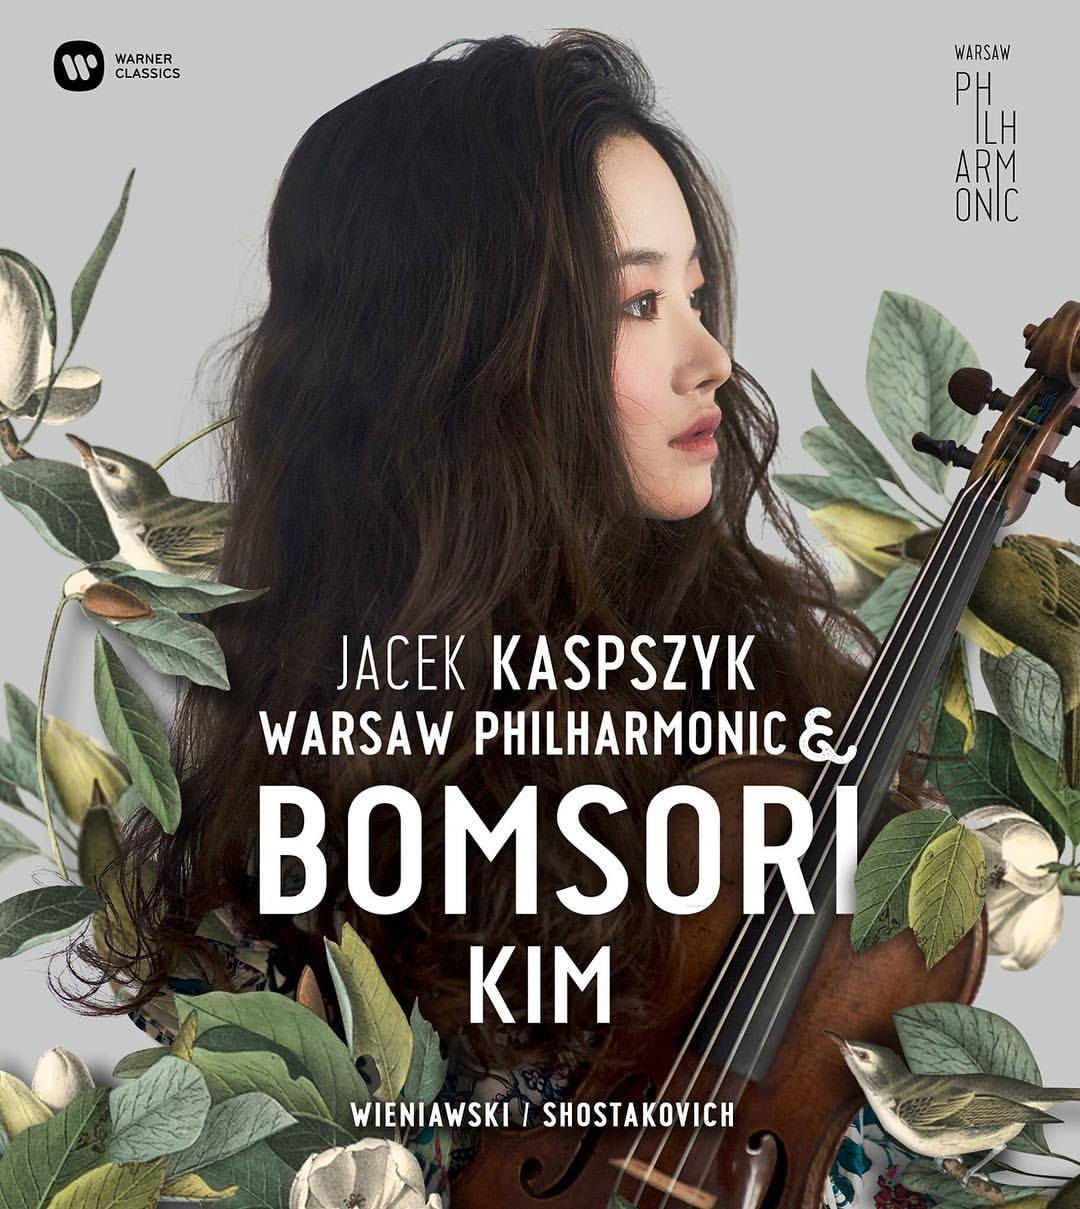 Our prize winner Bomsori Kim records a CD for Warner Classics with the National Philharmonic in Warsaw under the button of Jacek Kaspszyk. Premiere - 27.10.2017!